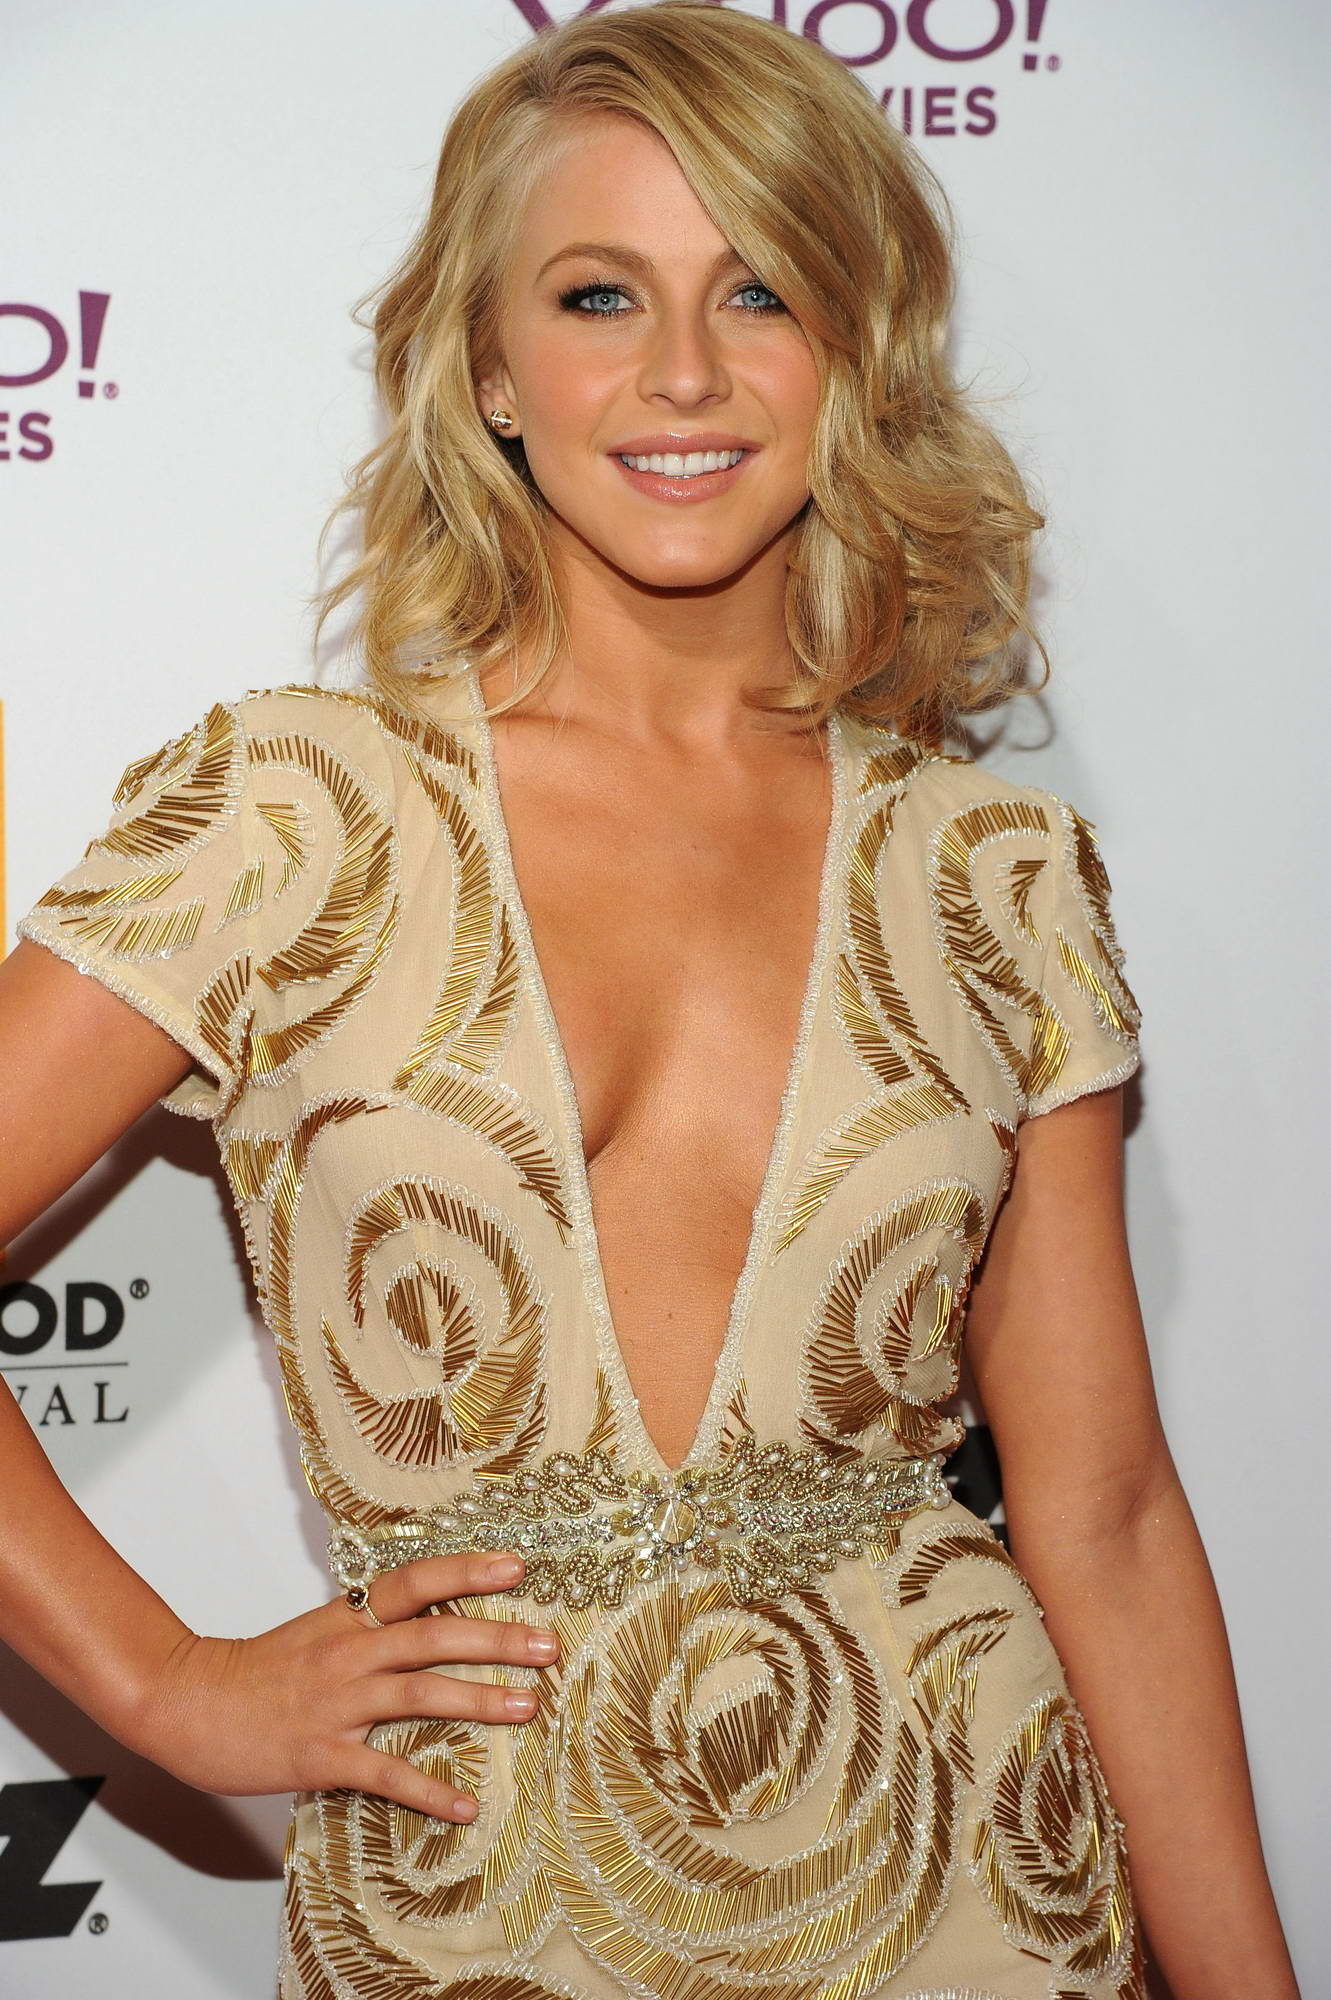 Julianne hough braless naked (37 pics)